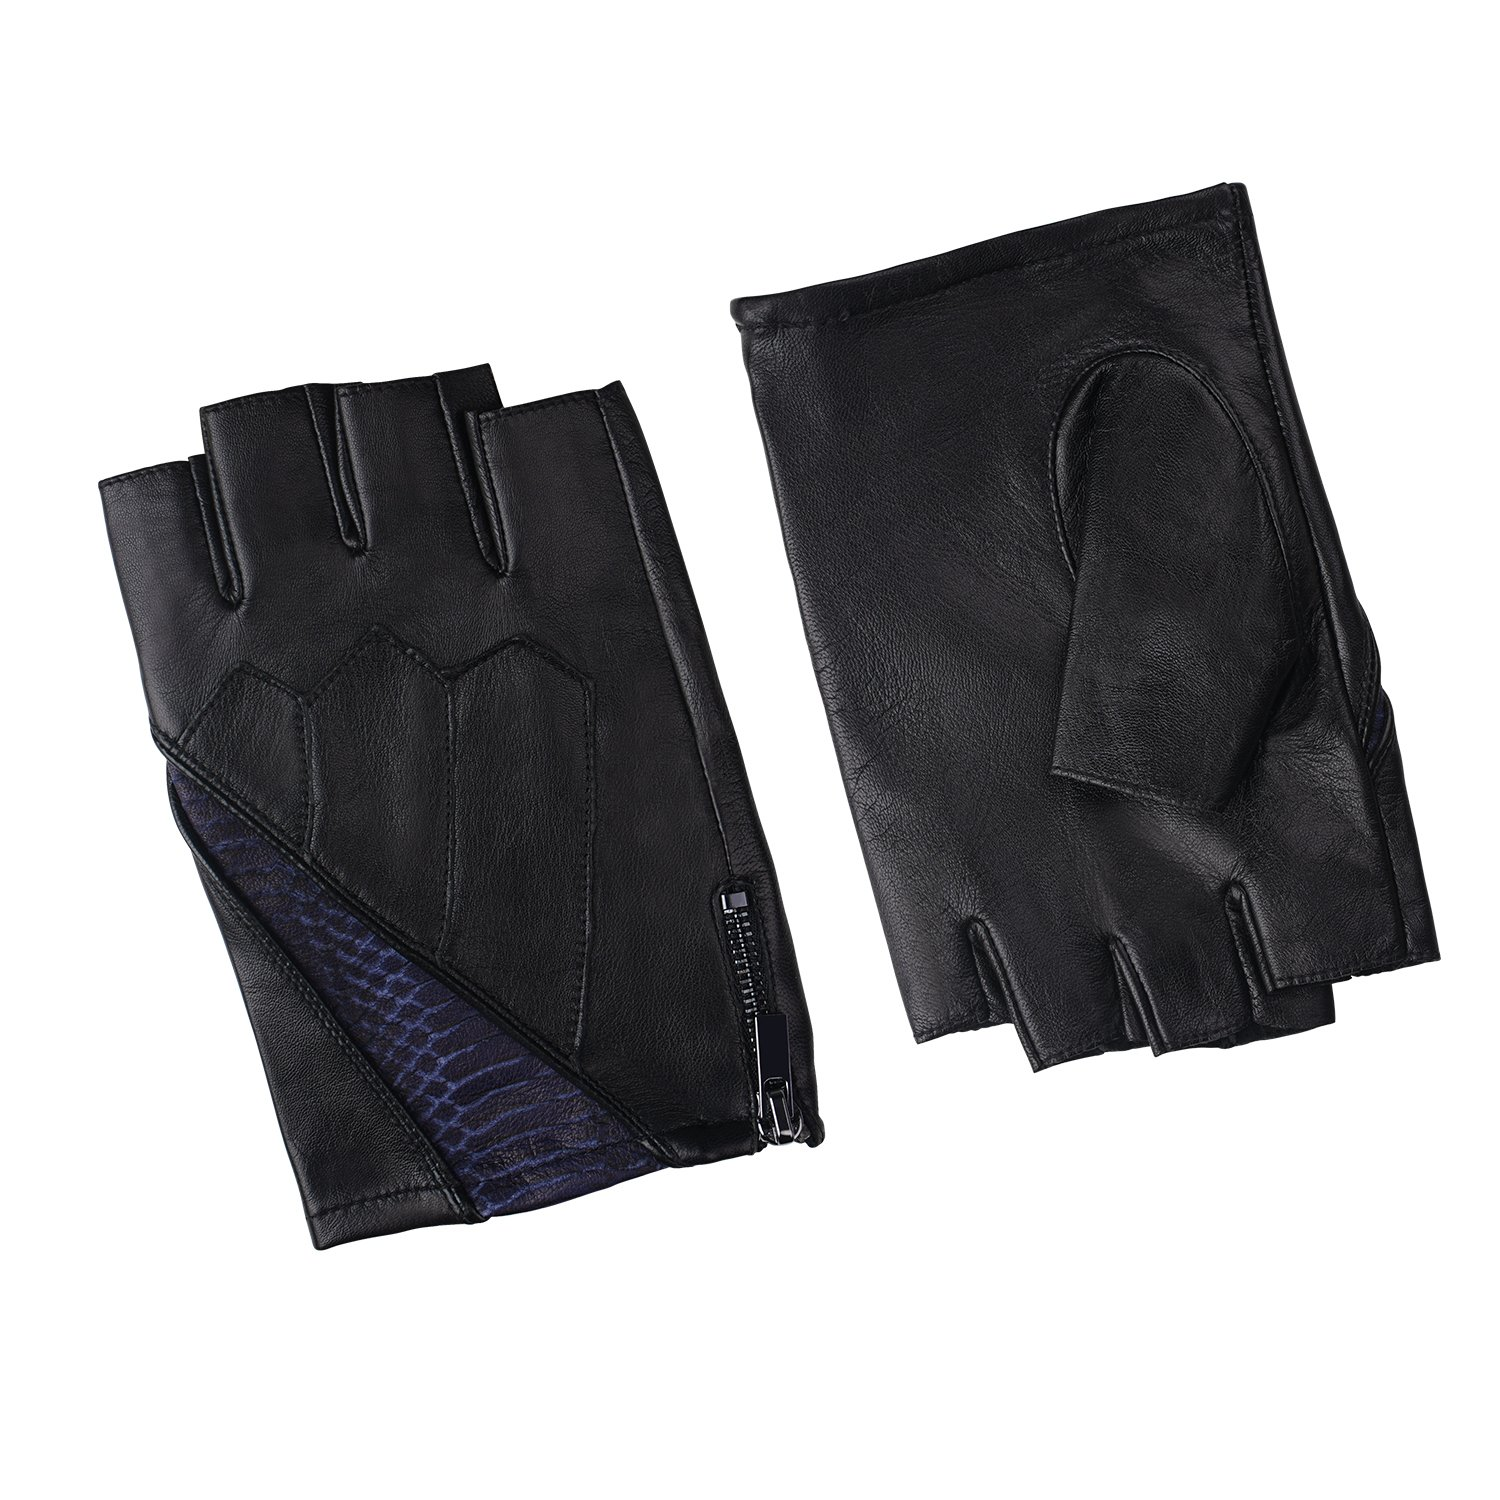 Fioretto Cool Gifts Mens Leather Gloves Fingerless Driving Motorcycle Genuine Leather Gloves Sport Half Finger Men's Leather Gloves Unlined Mens gifts Blue S/M